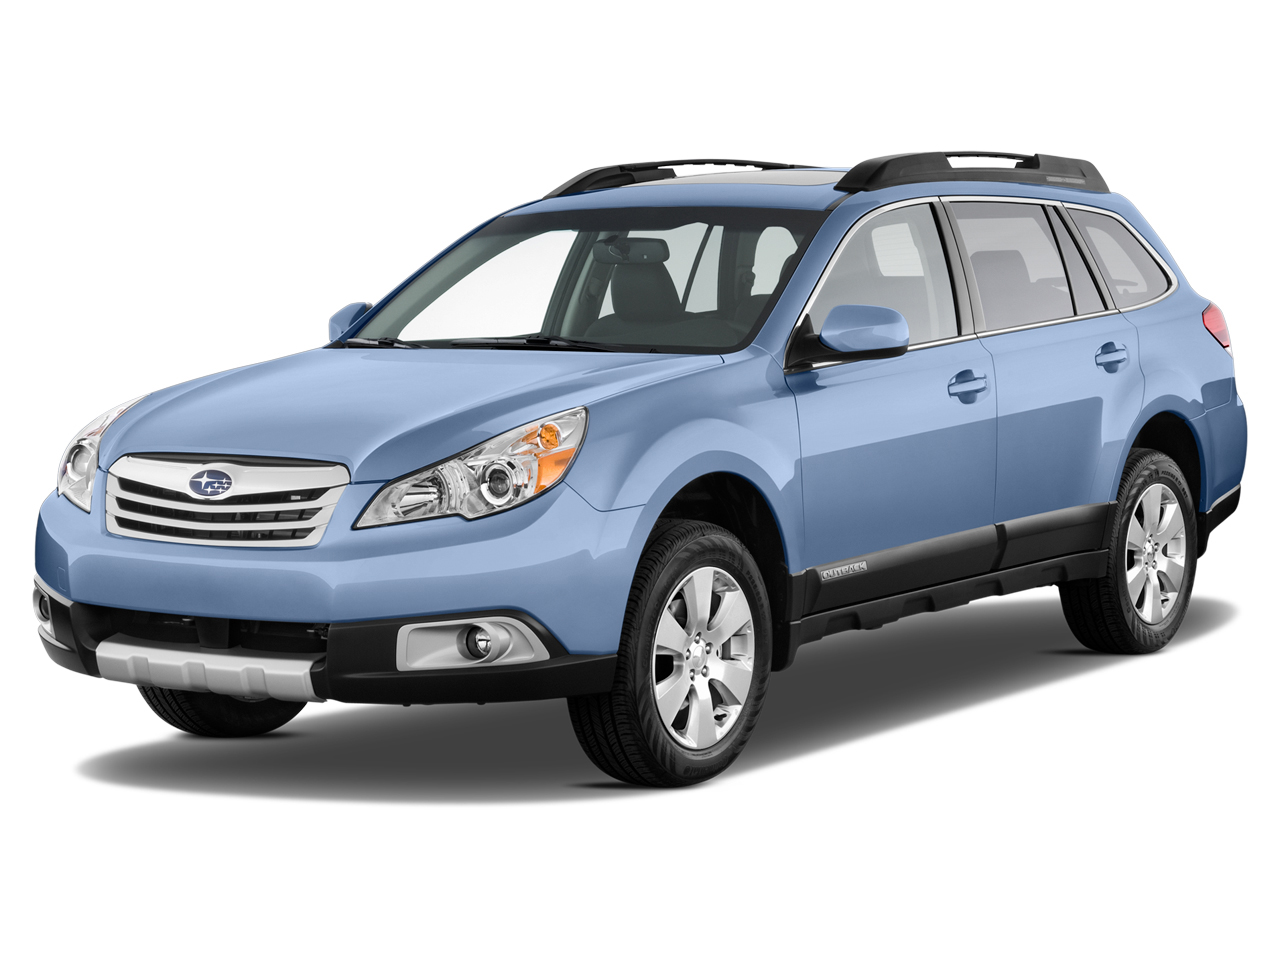 2012 subaru outback review ratings specs prices and. Black Bedroom Furniture Sets. Home Design Ideas